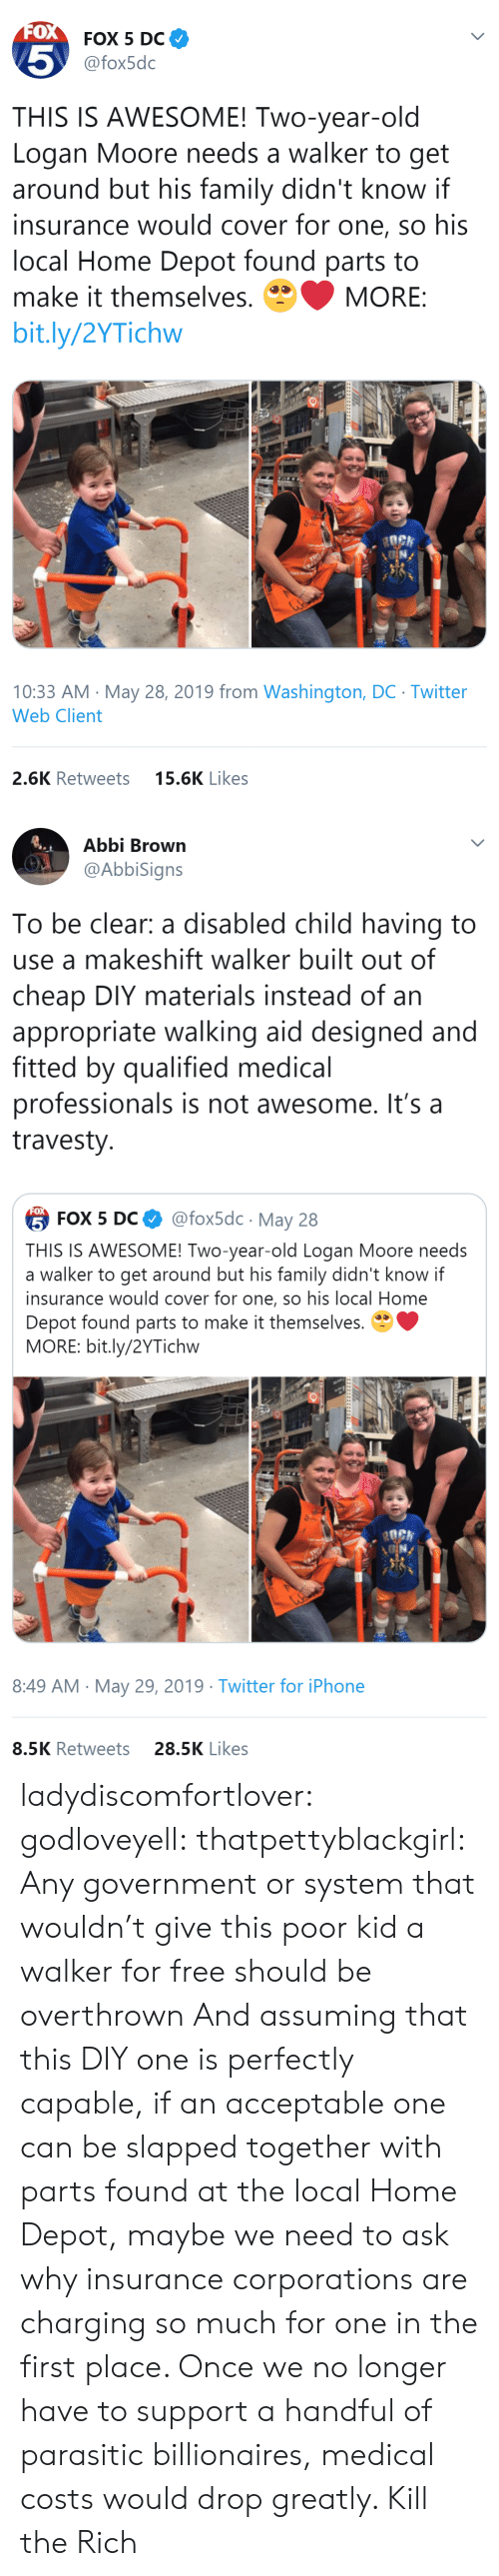 So Much For: FOX  FOX 5 DC  5  @fox5dc  THIS IS AWESOME! Two-year-old  Logan Moore needs a walker to get  around but his family didn't know if  insurance would cover for one, so his  local Home Depot found parts to  make it themselves.  MORE:  bit.ly/2YTichw  10:33 AM May 28, 2019 from Washington, DC Twitter  Web Client  15.6K Likes  2.6K Retweets   Abbi Brown  @AbbiSigns  To be clear: a disabled child having to  use a makeshift walker built out of  cheap DIY materials instead of an  appropriate walking aid designed and  fitted by qualified medical  professionals is not awesome. It's a  travesty  FOX  @fox5dc May 28  5 FOX 5 DС  THIS IS AWESOME! Two-year-old Logan Moore needs  a walker to get around but his family didn't know if  insurance would cover for one, so his local Home  Depot found parts to make it themselves.  MORE: bit.ly/2YTichw  8:49 AM May 29, 2019 Twitter for iPhone  28.5K Likes  8.5K Retweets ladydiscomfortlover: godloveyell:  thatpettyblackgirl:  Any government or system that wouldn't give this poor kid a walker for free should be overthrown   And assuming that this DIY one is perfectly capable, if an acceptable one can be slapped together with parts found at the local Home Depot, maybe we need to ask why insurance corporations are charging so much for one in the first place.  Once we no longer have to support a handful of parasitic billionaires, medical costs would drop greatly.    Kill the Rich